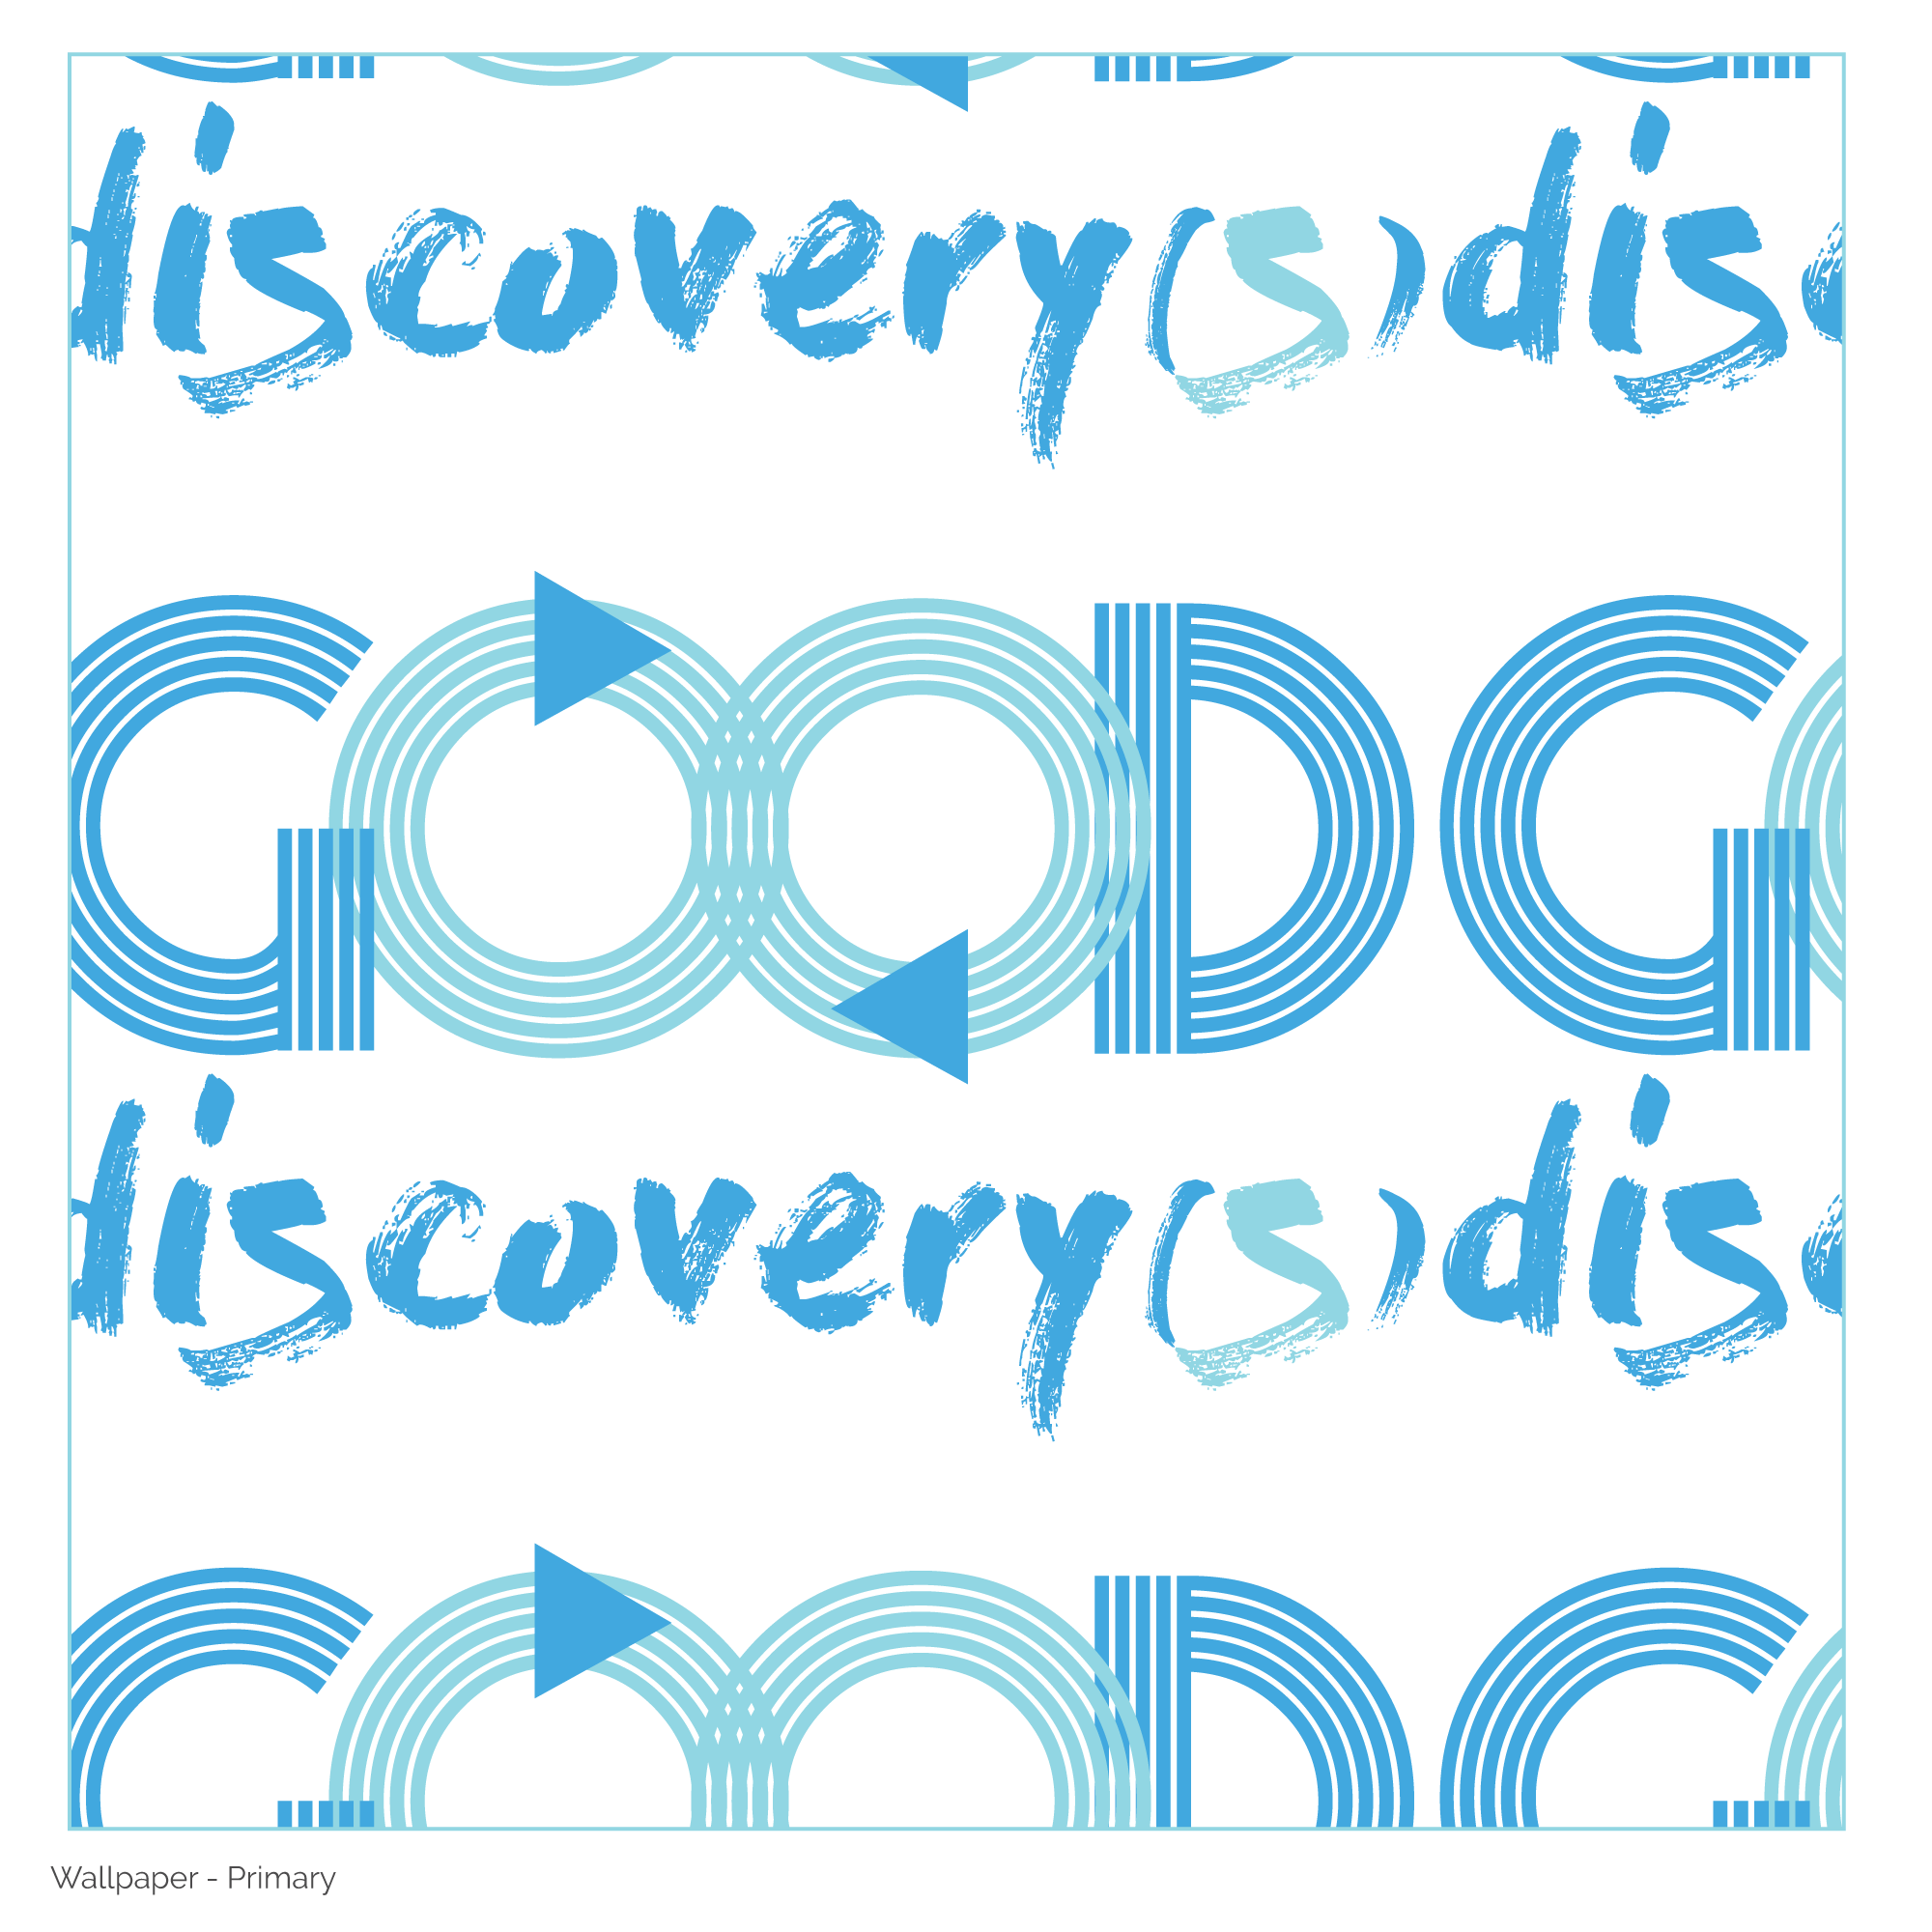 FiR-Creative---Good-Discovery(s)---Wallpaper-Primary.png